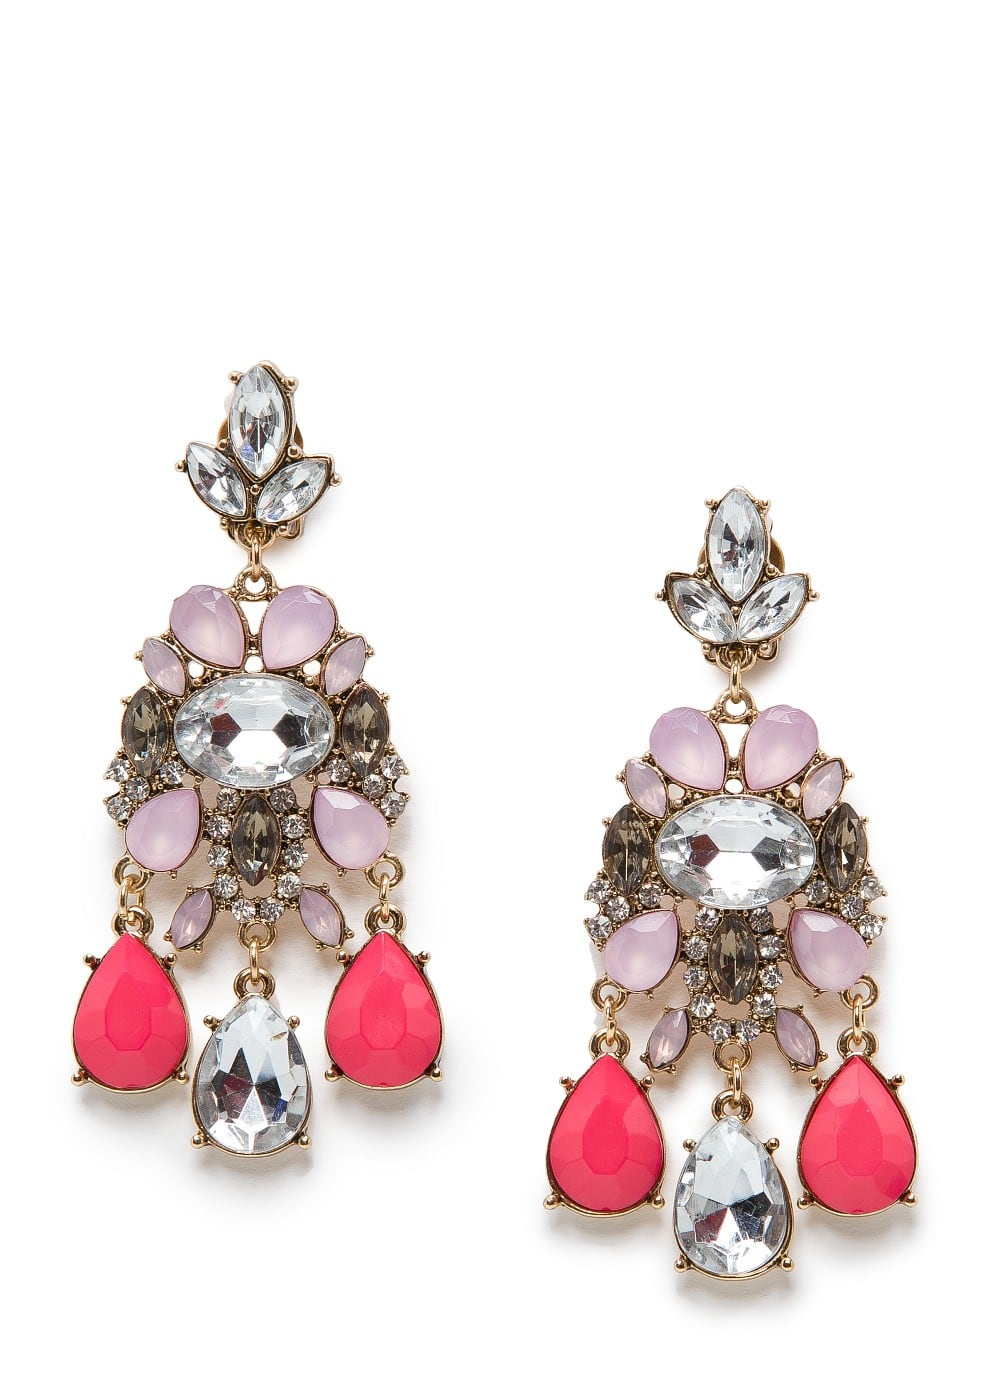 Crystal embellished chandelier earrings